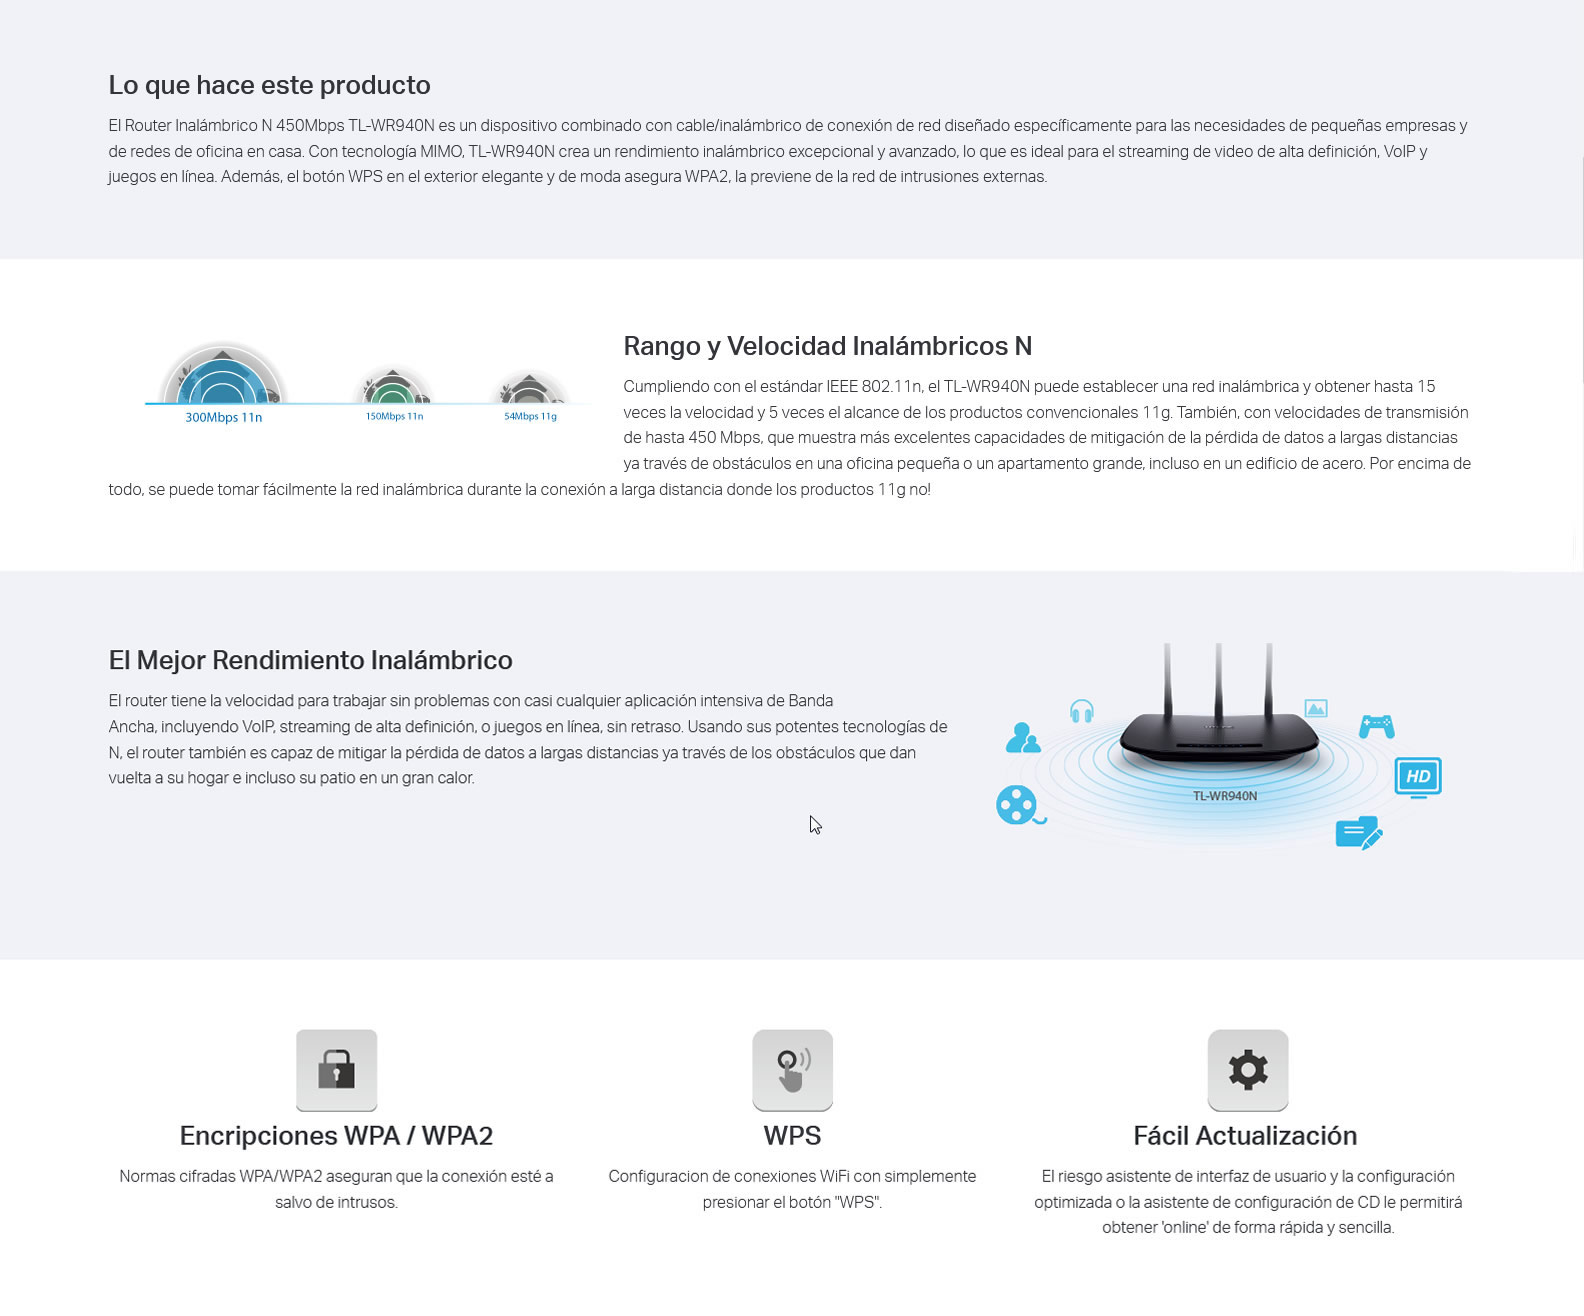 TL-WR940N Router Inalámbrico 450Mbps